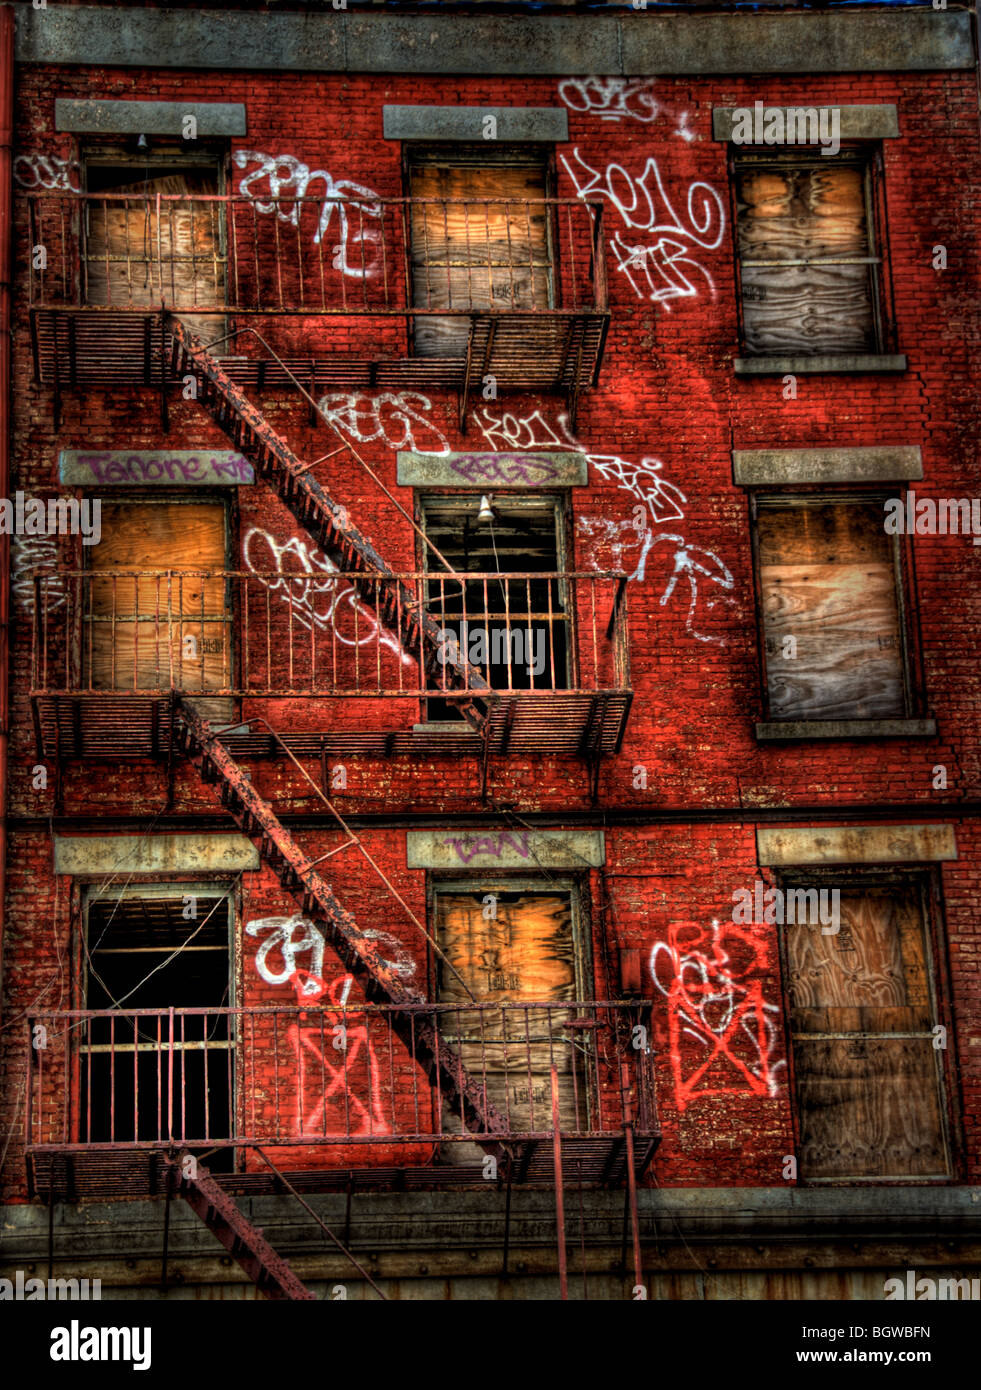 A boarded up brick buildingi, covered in graffiti.  Fire escape stairwells make a pattern between floors. - Stock Image